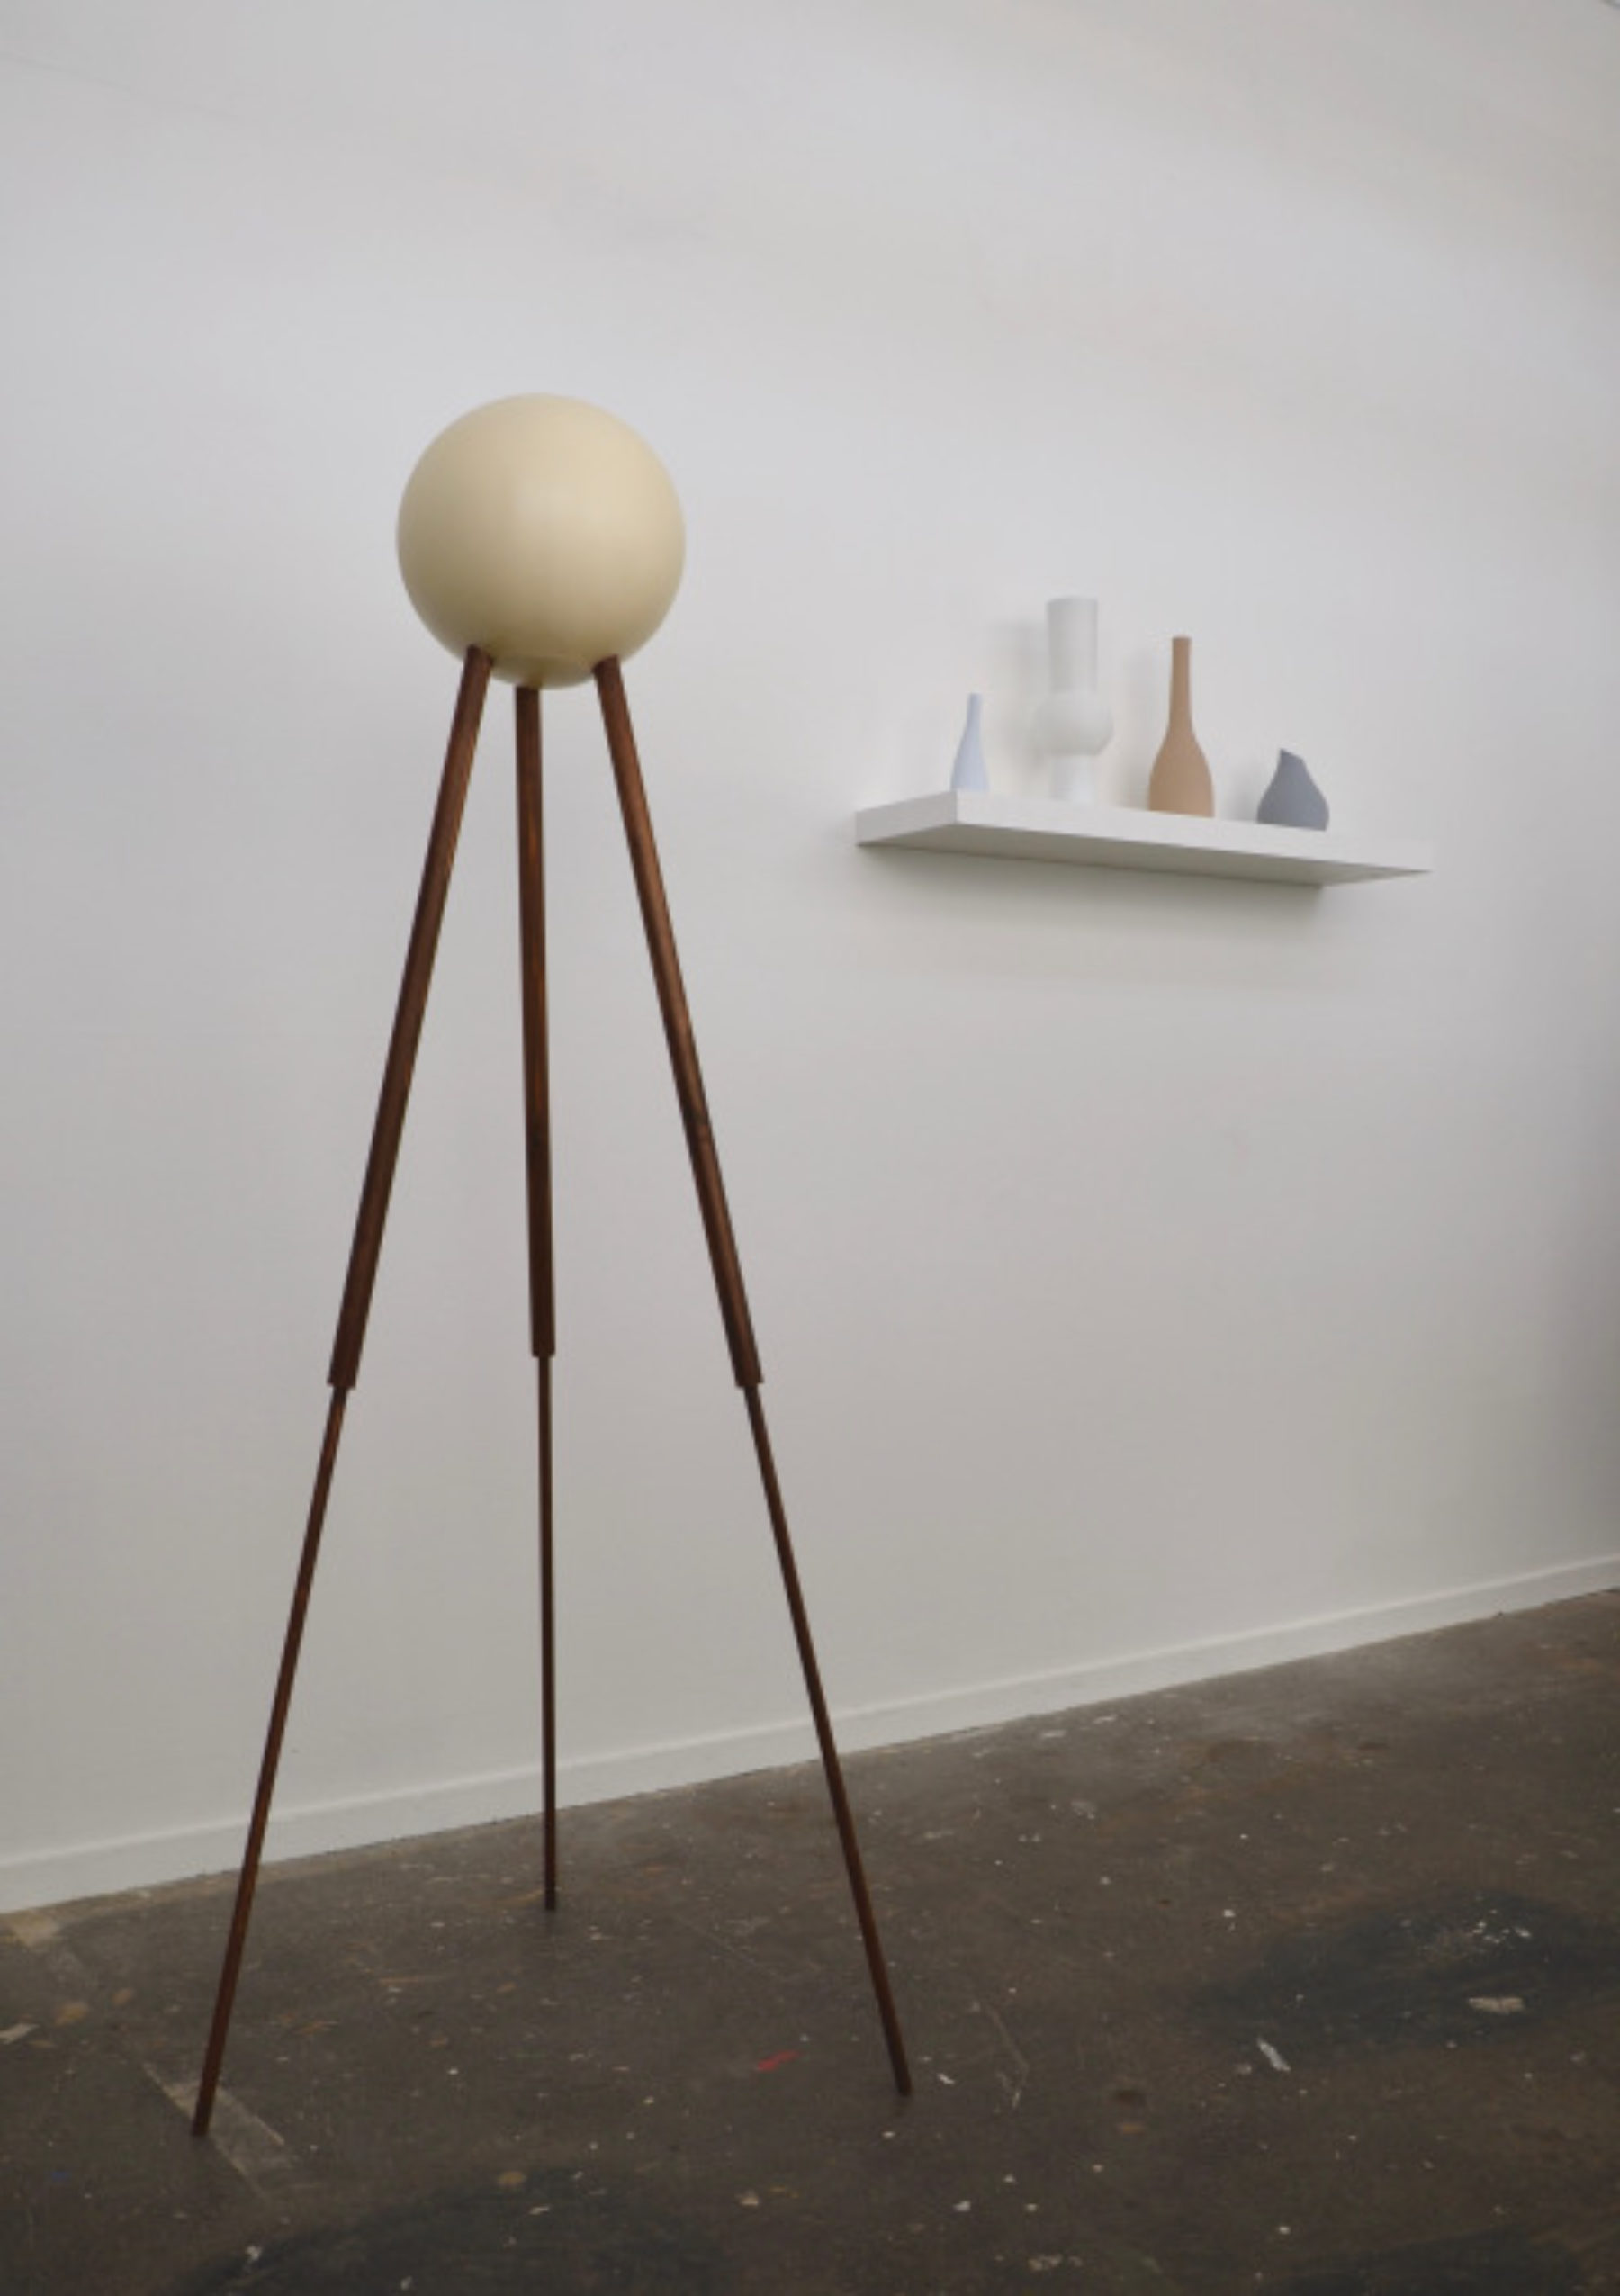 Test Space exhibition: Colin Higginson and Marcus Jefferies